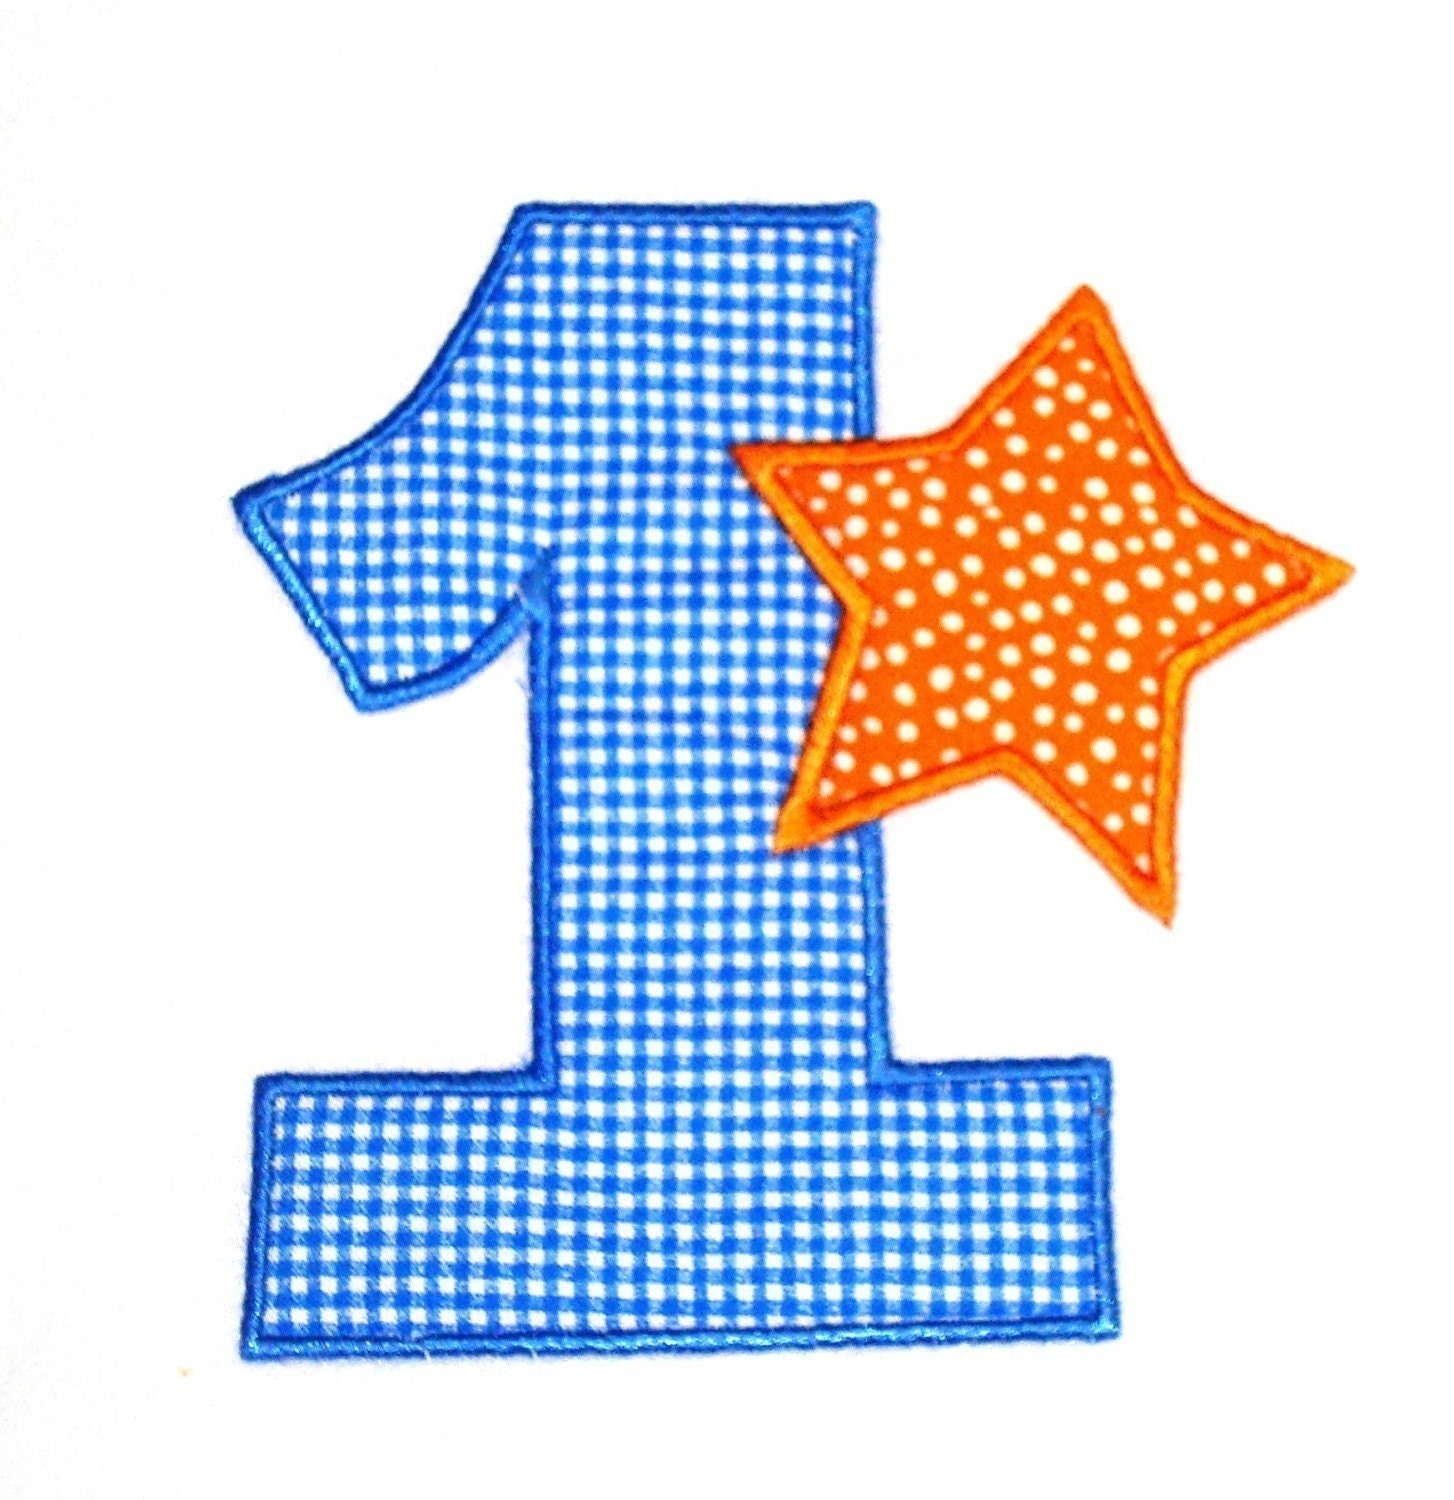 Machine Embroidery Applique Design Star Numbers 4x4 And 5x7